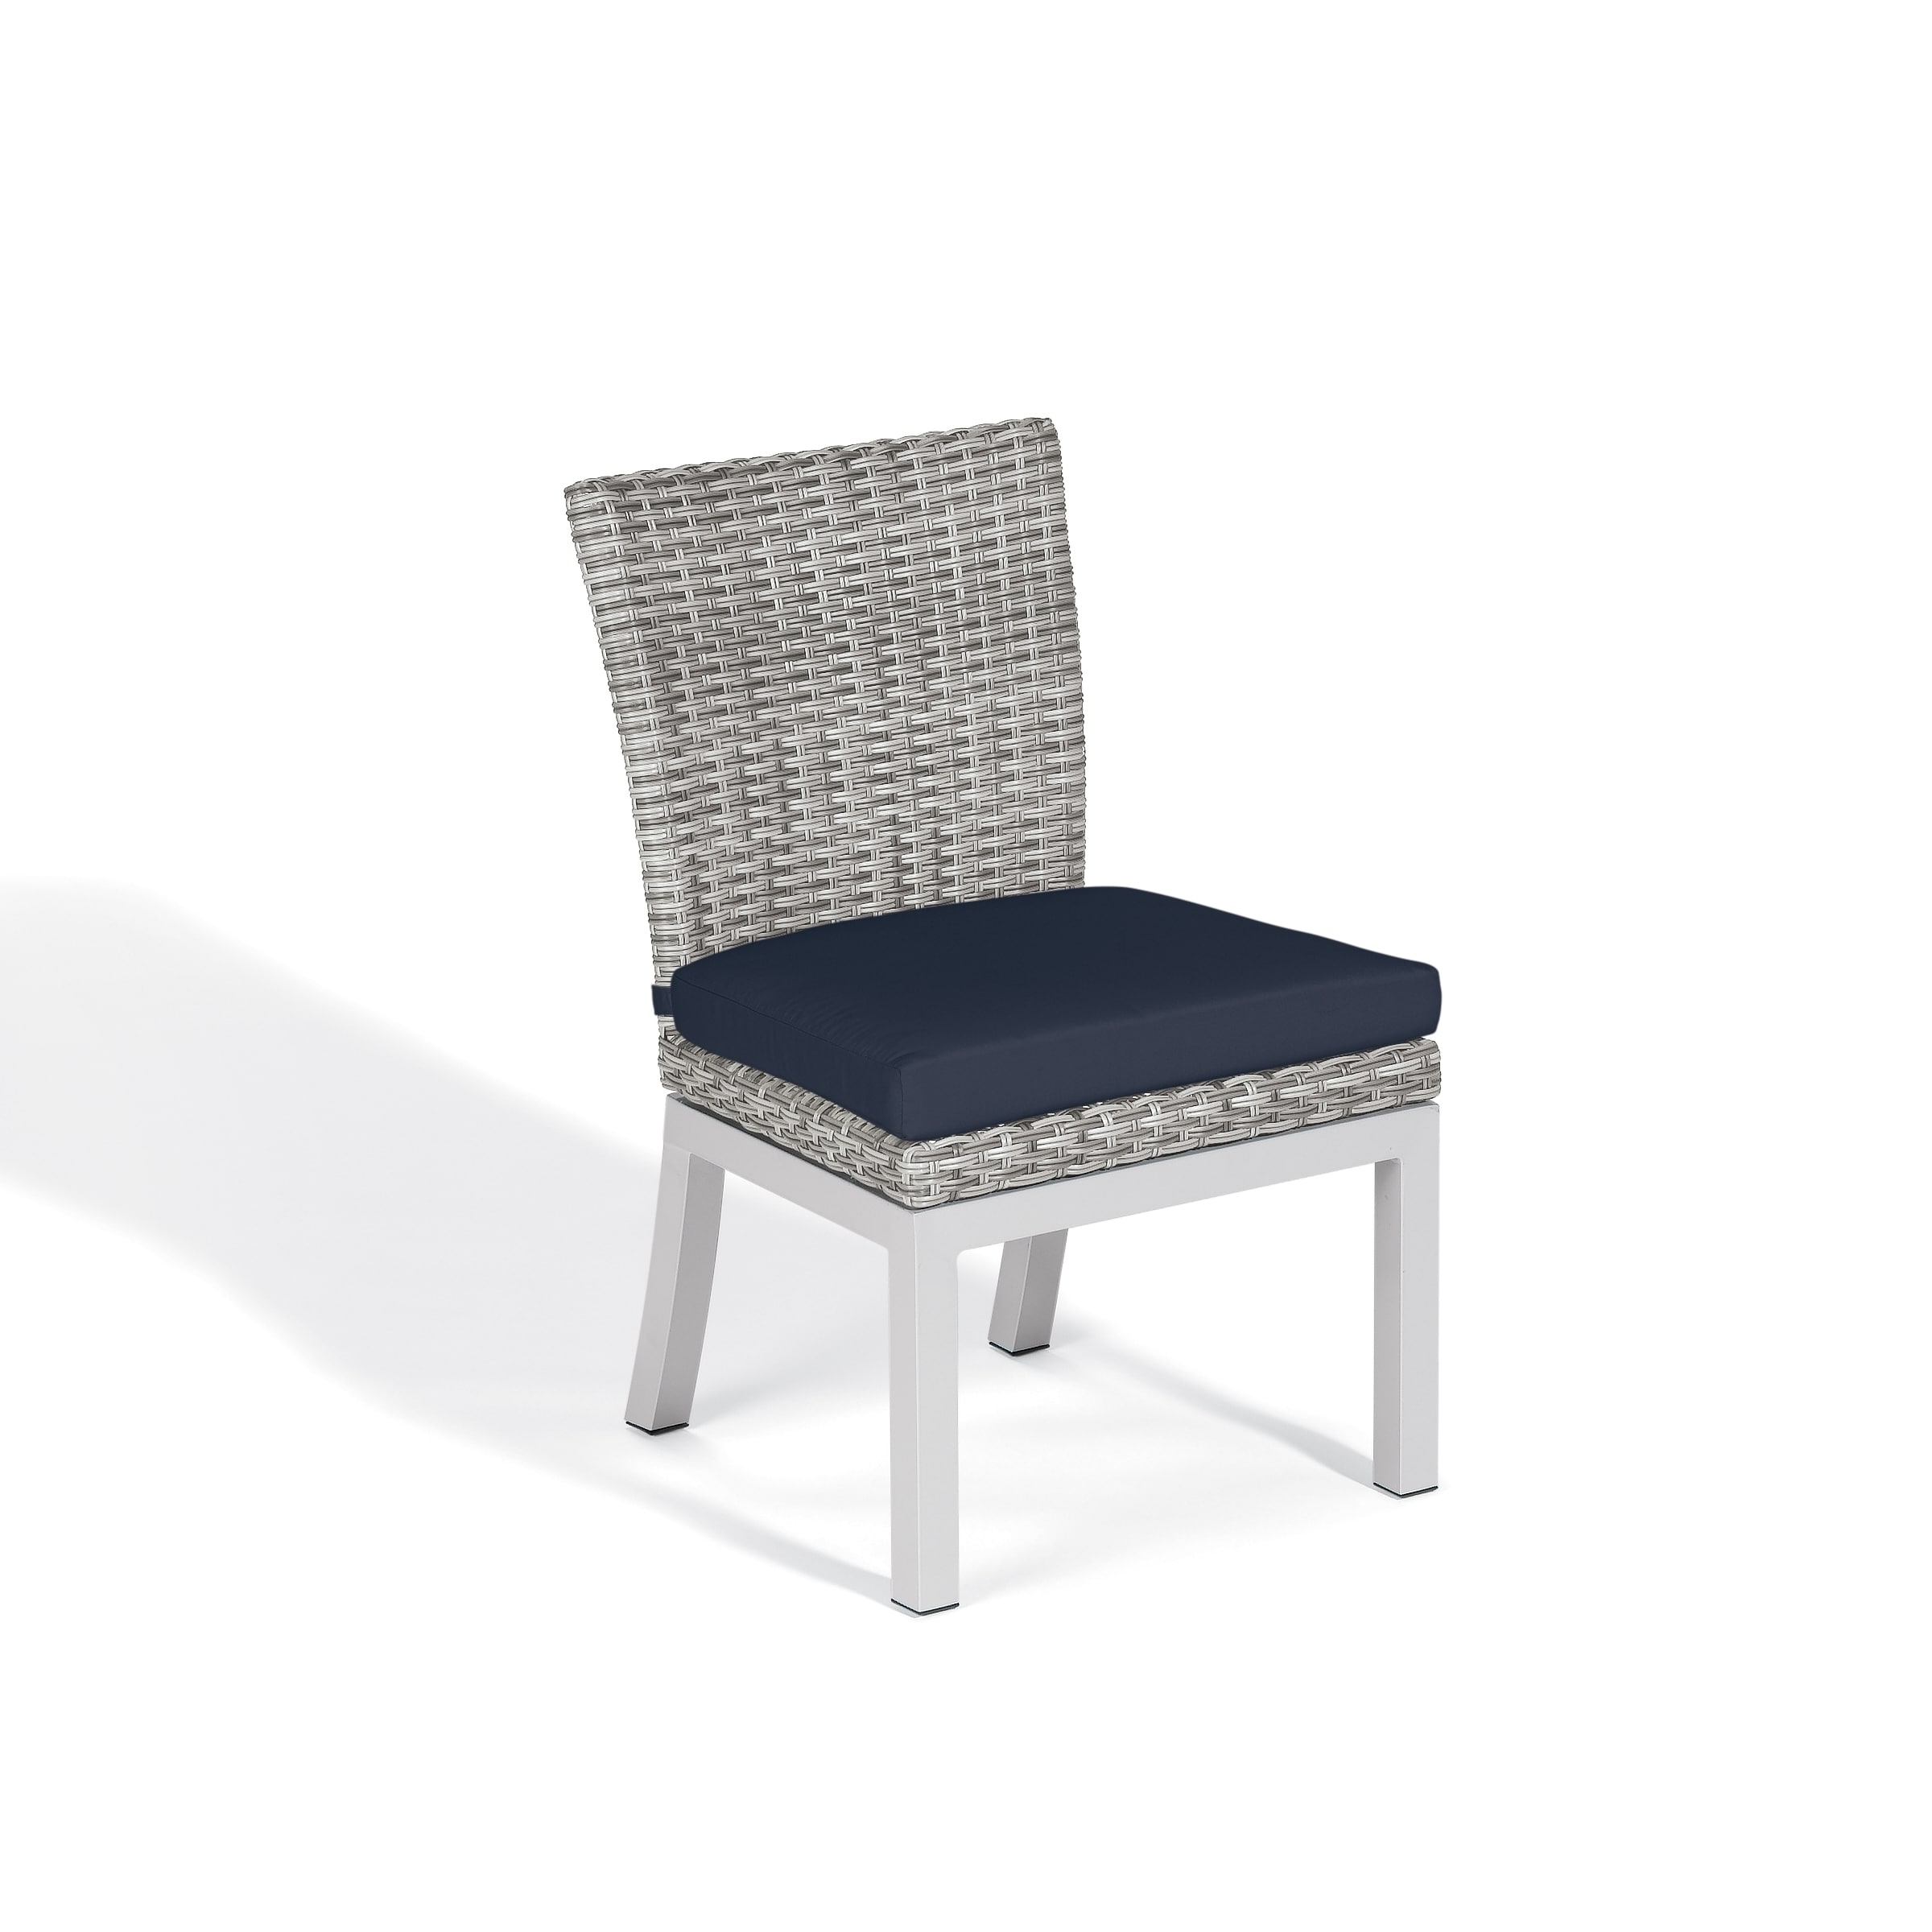 Shop oxford garden travira woven side chair with powder coated aluminum legs midnight blue polyester cushion set of 2 free shipping today